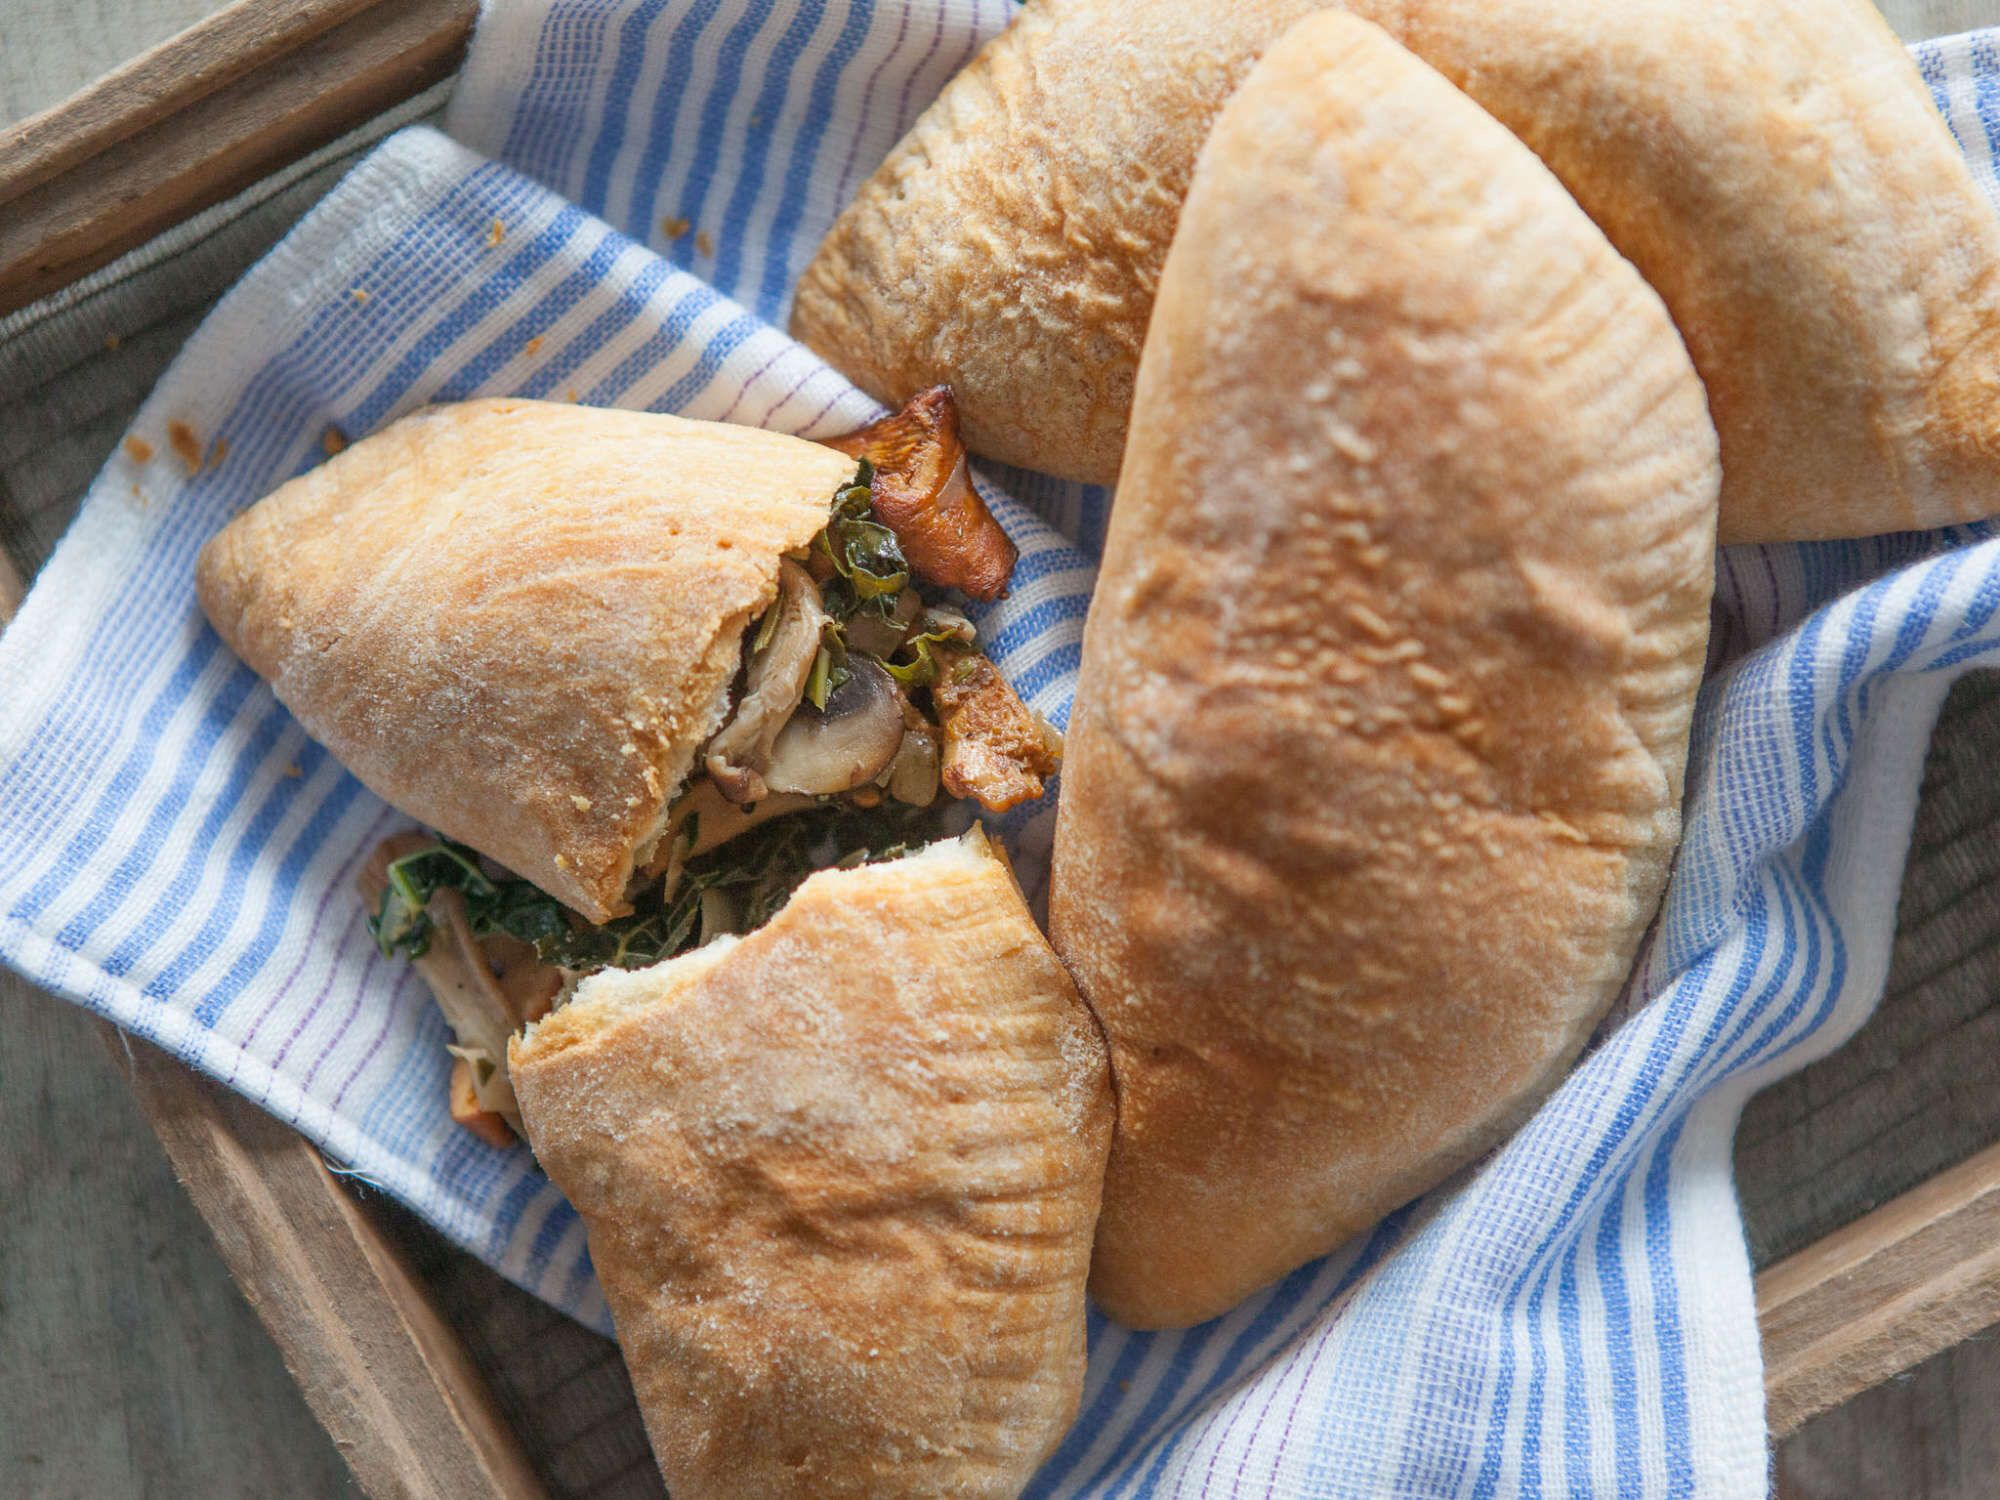 Easy mushroom kale hand pies whole foods recipe httpwww easy mushroom kale hand pies whole foods recipe http forumfinder Gallery